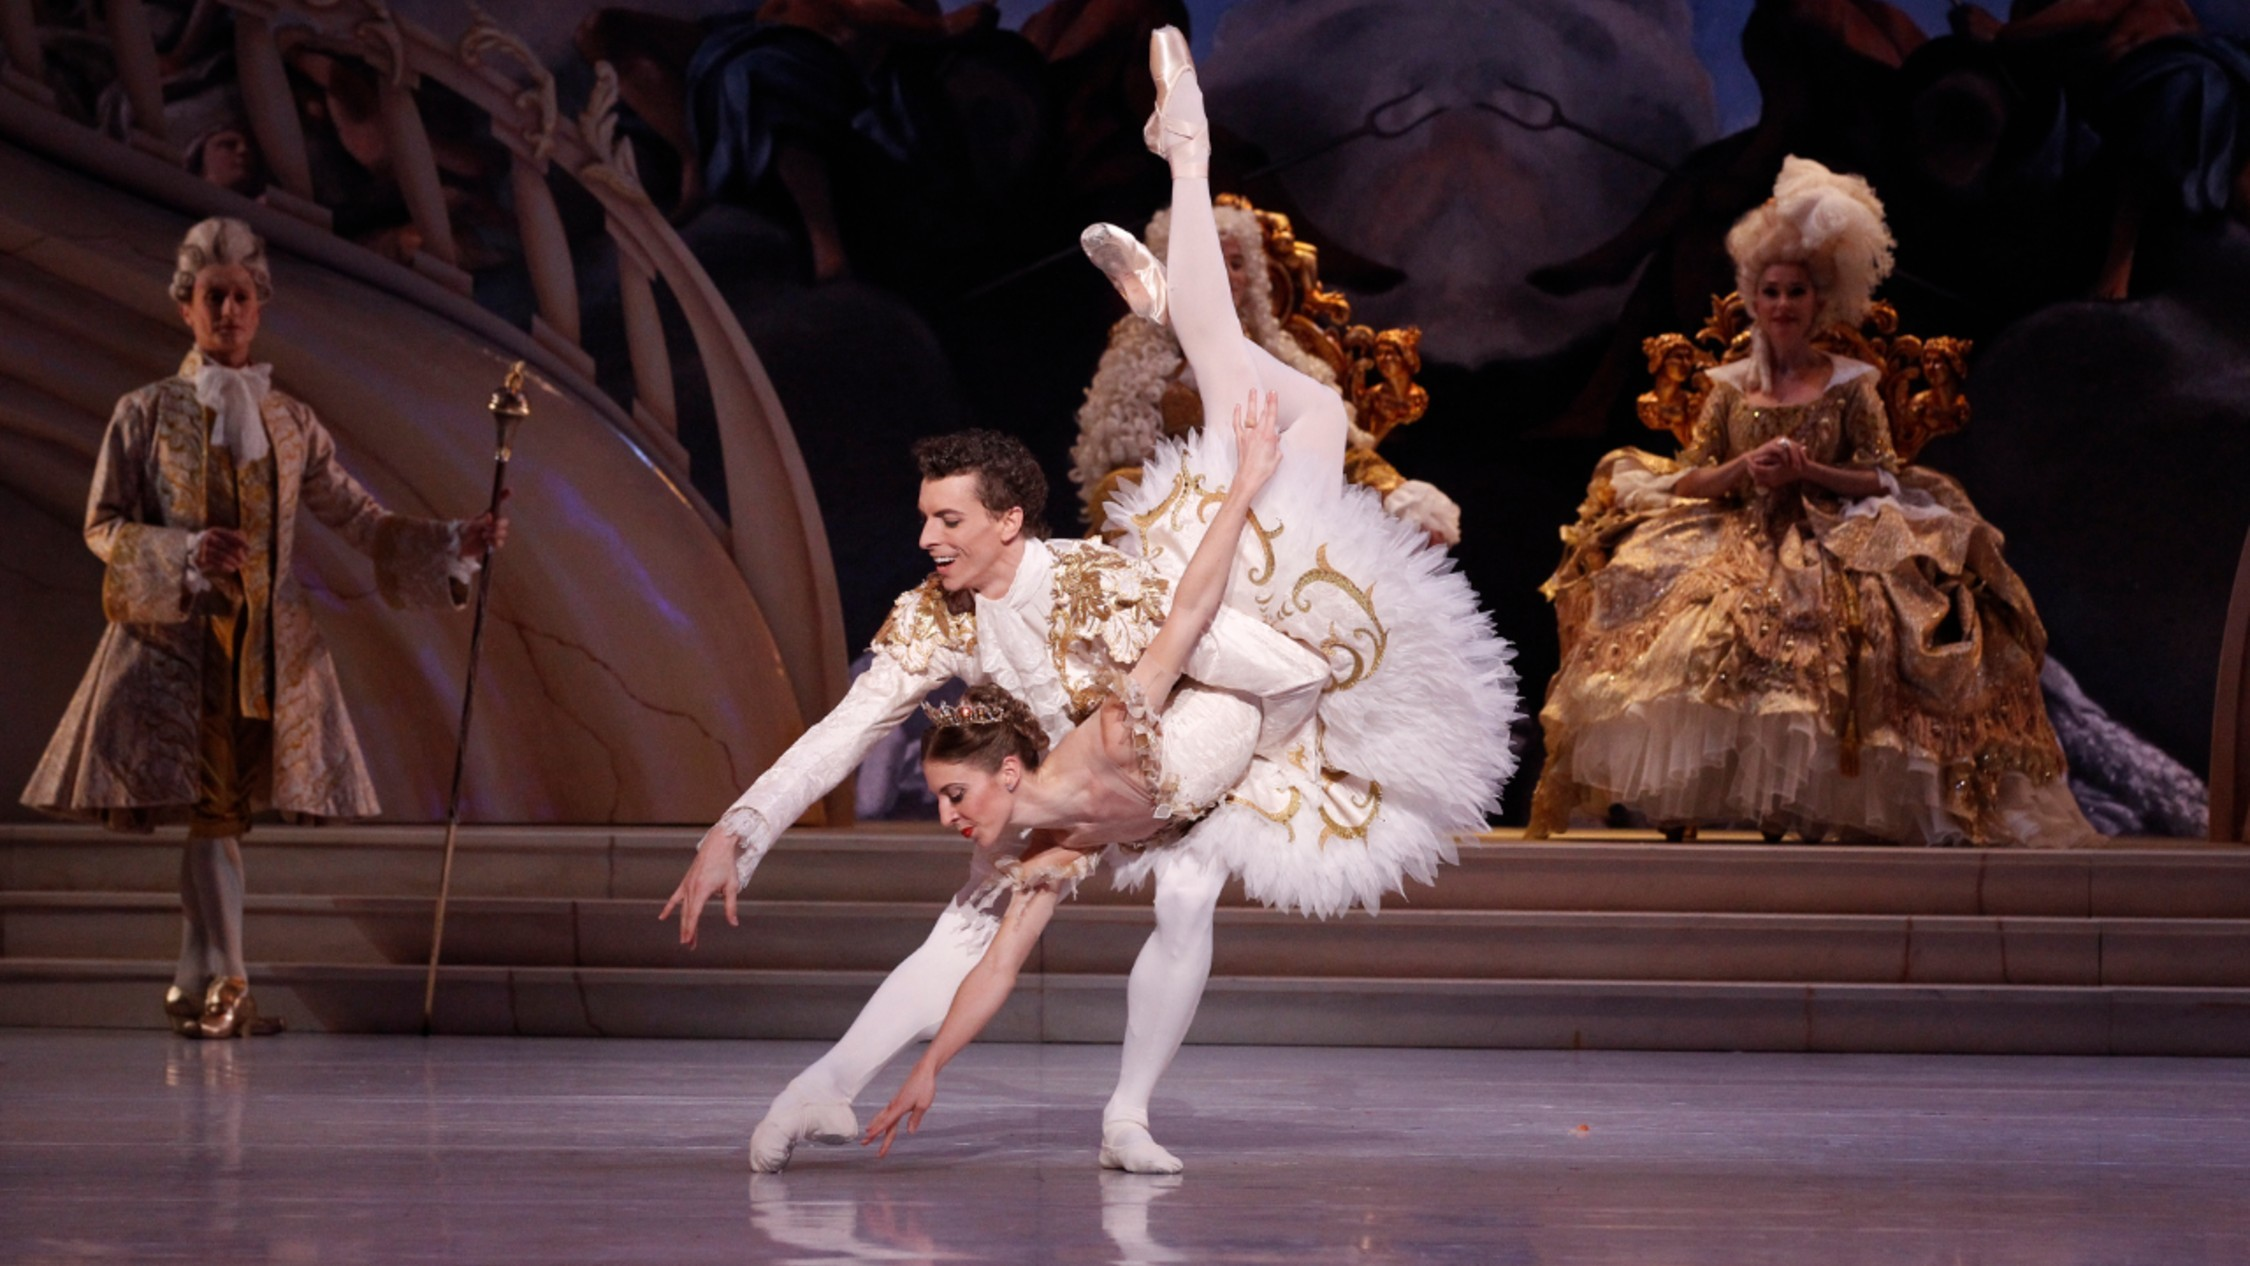 Kevin Jackson and Lana Jones in Aus Ballet's Sleeping Beauty